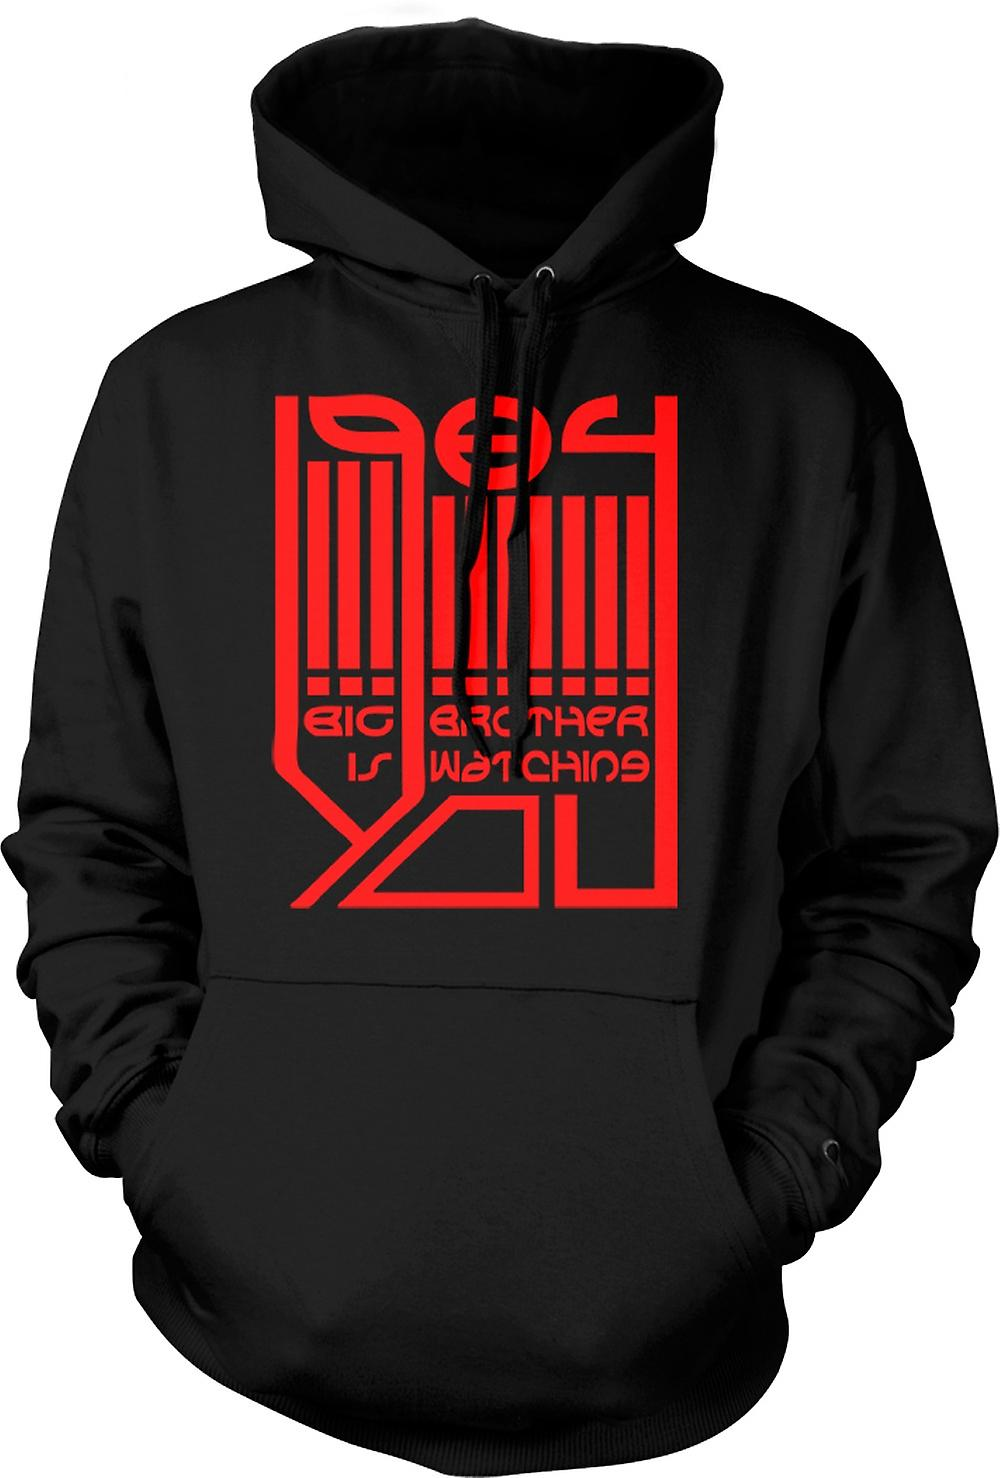 Kids Hoodie - Big Brother Is Watching - Logo - 1984